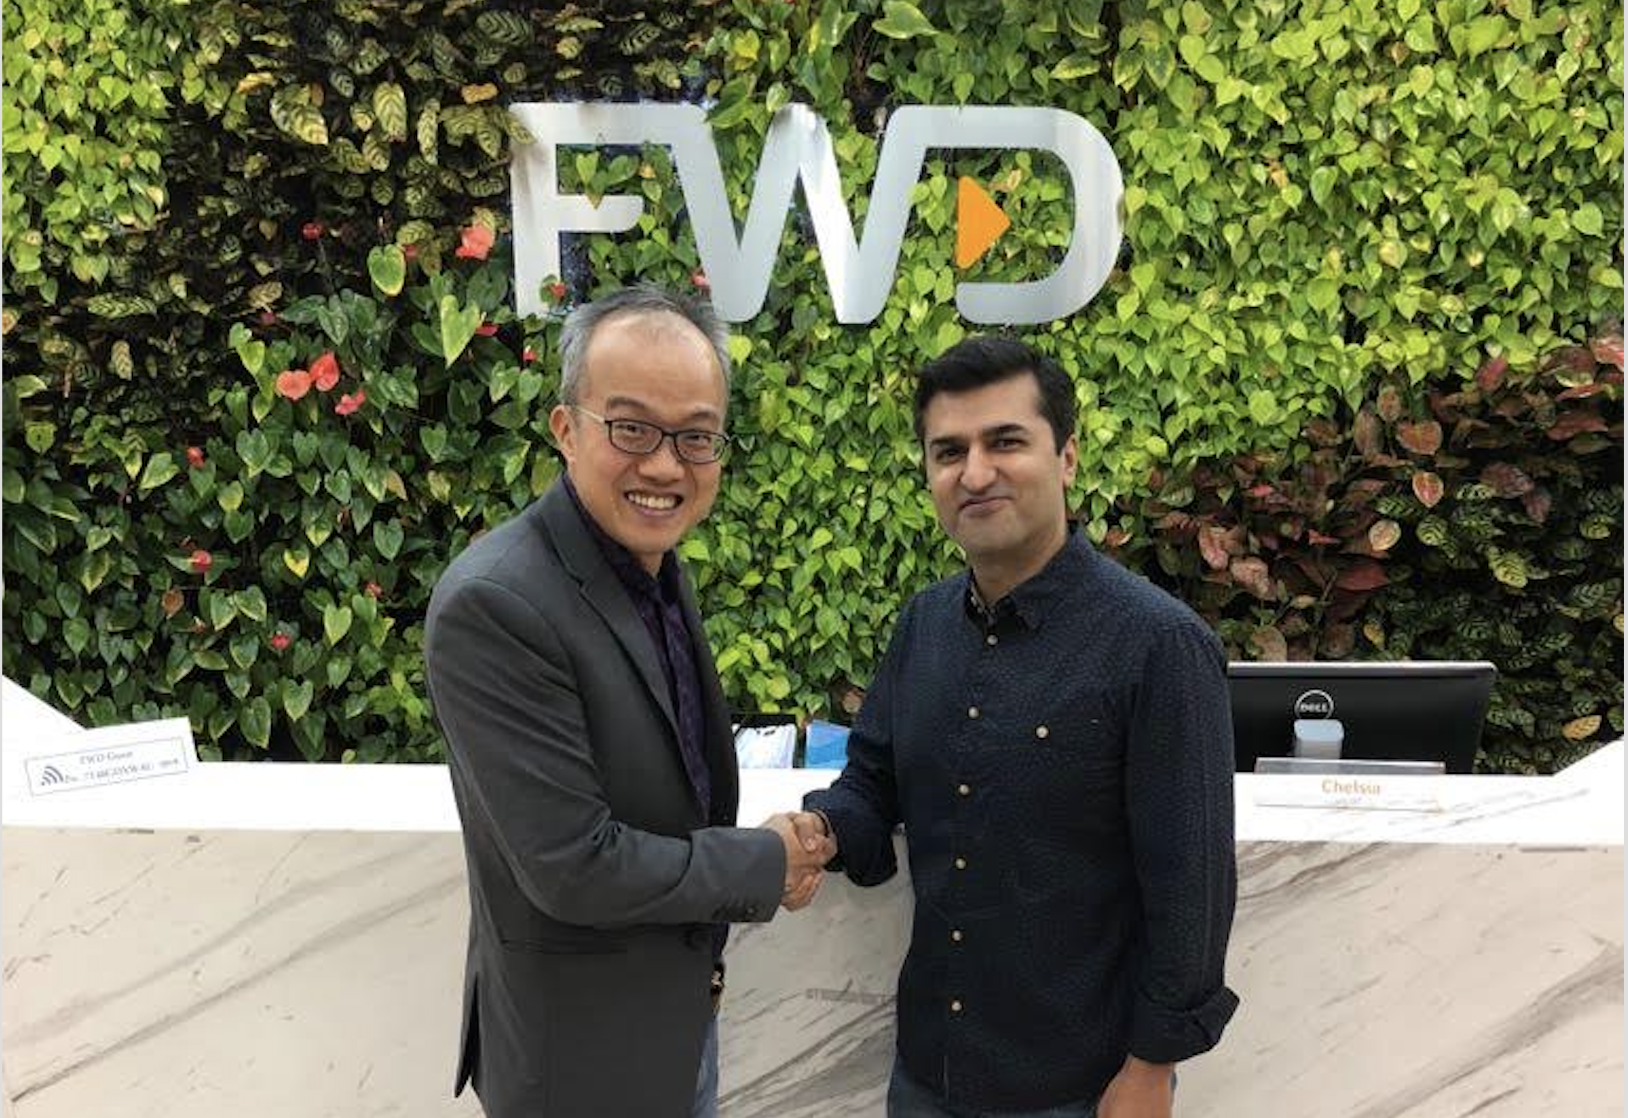 Benjamin Yeo, Managing Director and Head of Insurance Coverage at DBS Bank, with Abhishek Bhatia, Chief Executive Officer, FWD Singapore. Photo courtesy: FWD